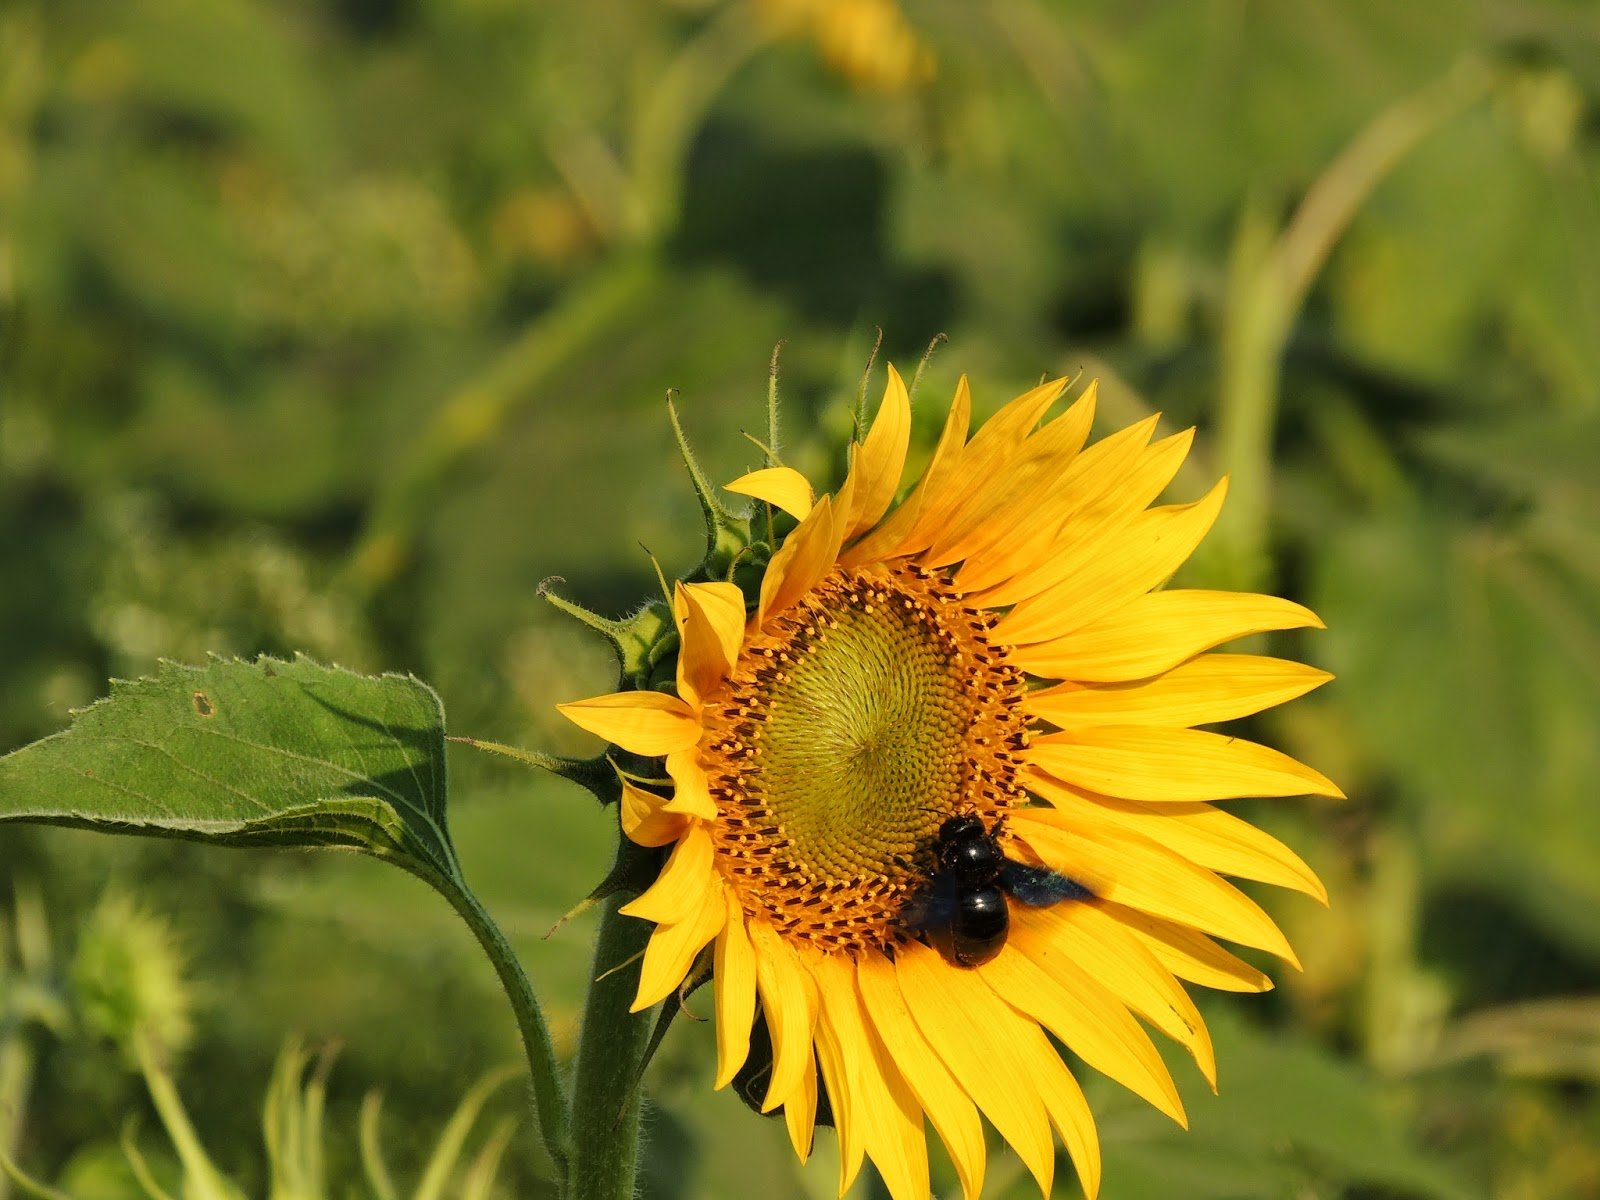 Sunflowers swarmed with bees